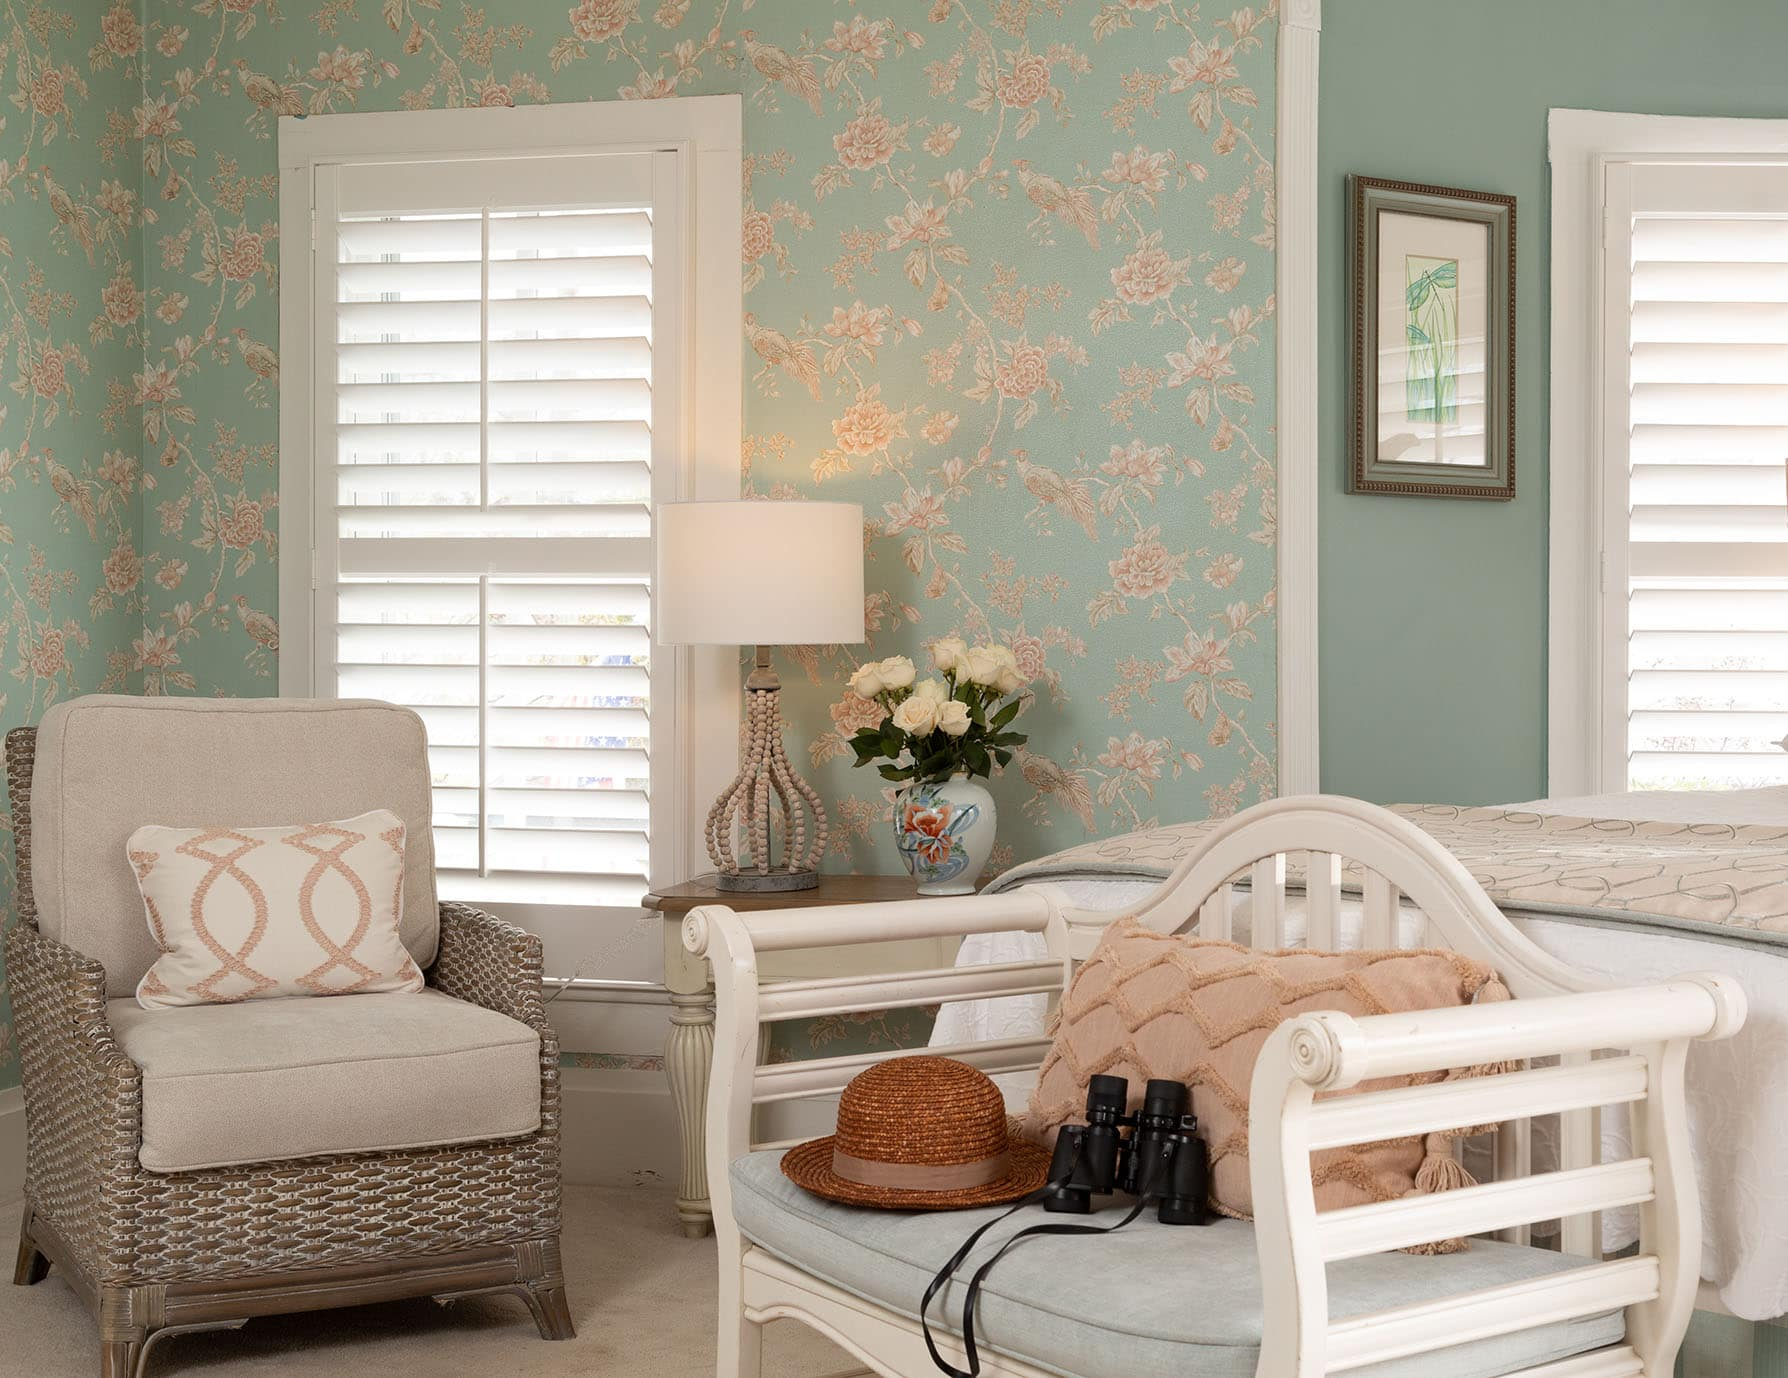 Manteo NC Bed and Breakfast Queen Bed and 3 Large Windows